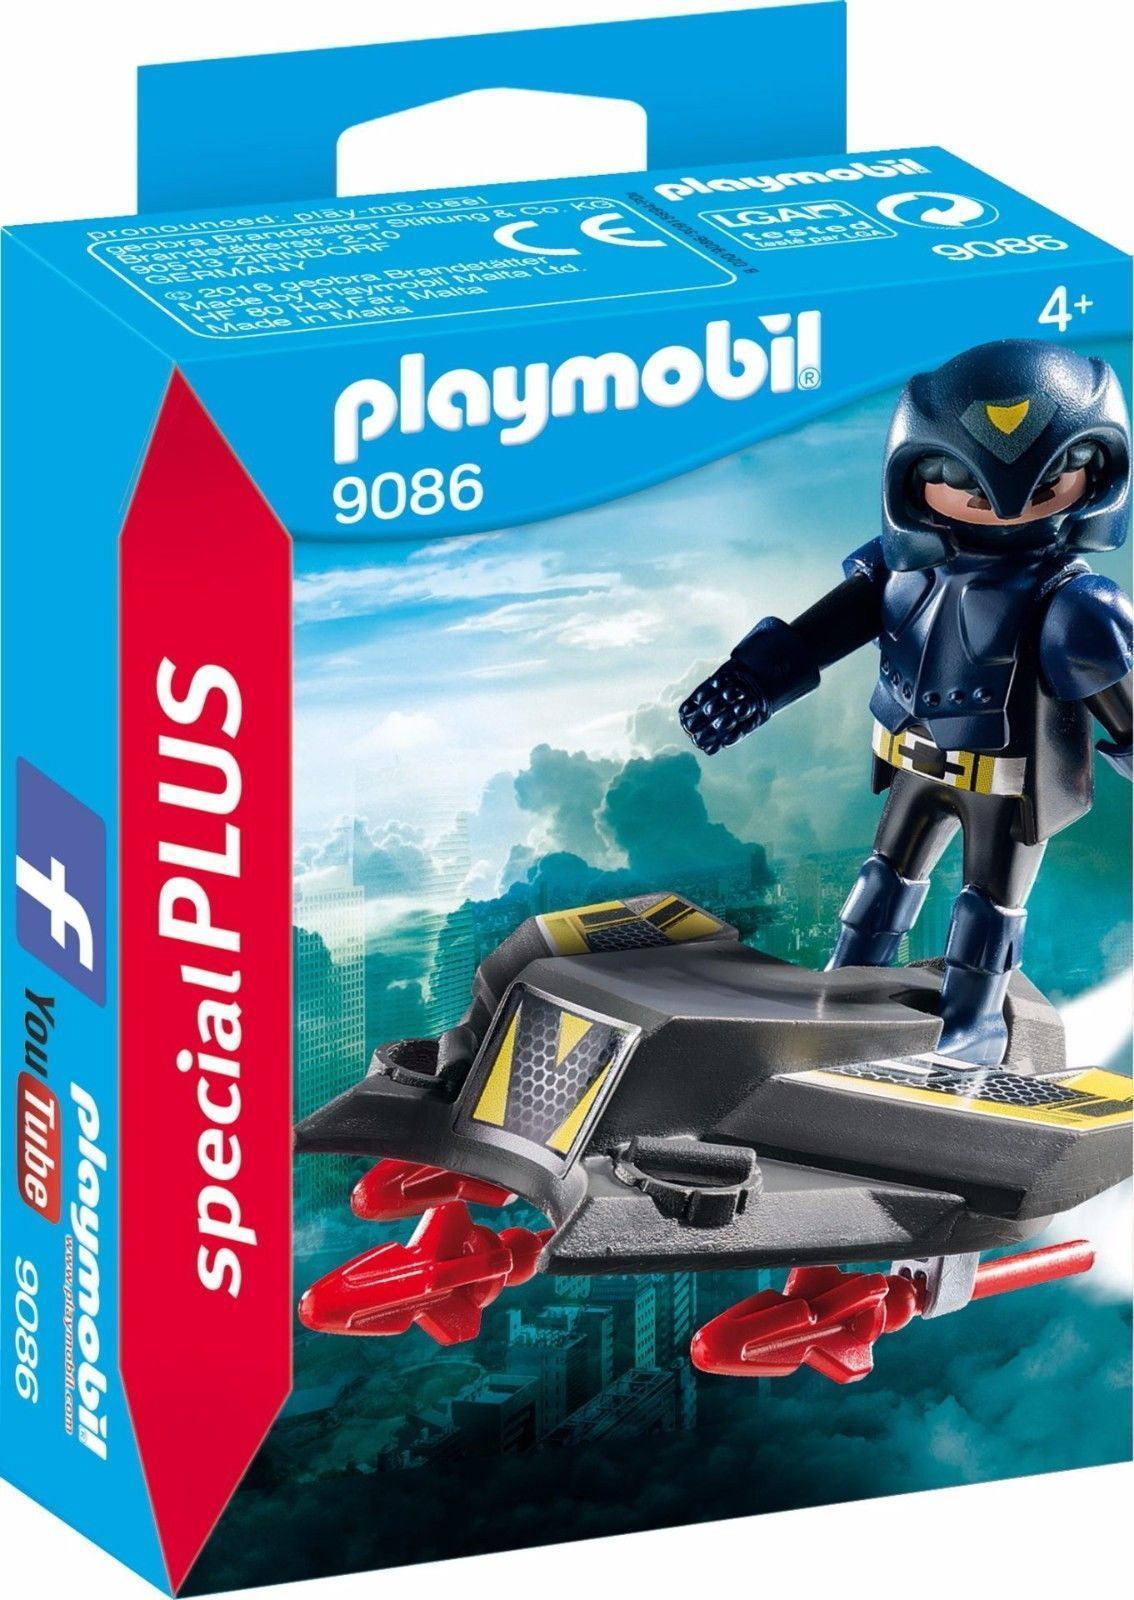 Playmobil 9086 - Special PLUS - Sky Kight Jet - Special Series - New and Sealed